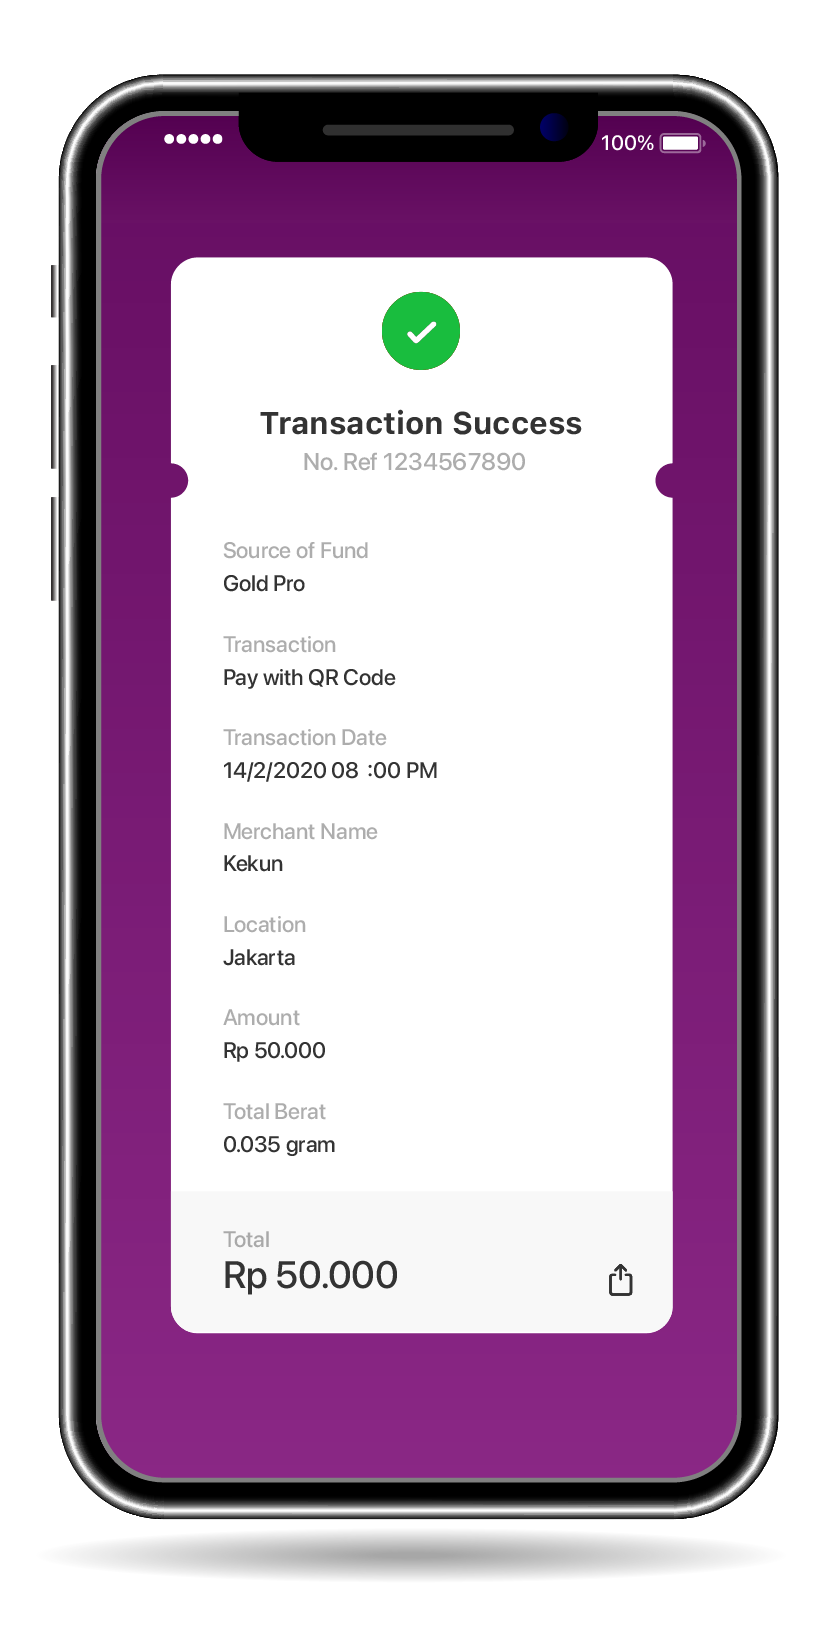 Notification will appear if the transaction is successful